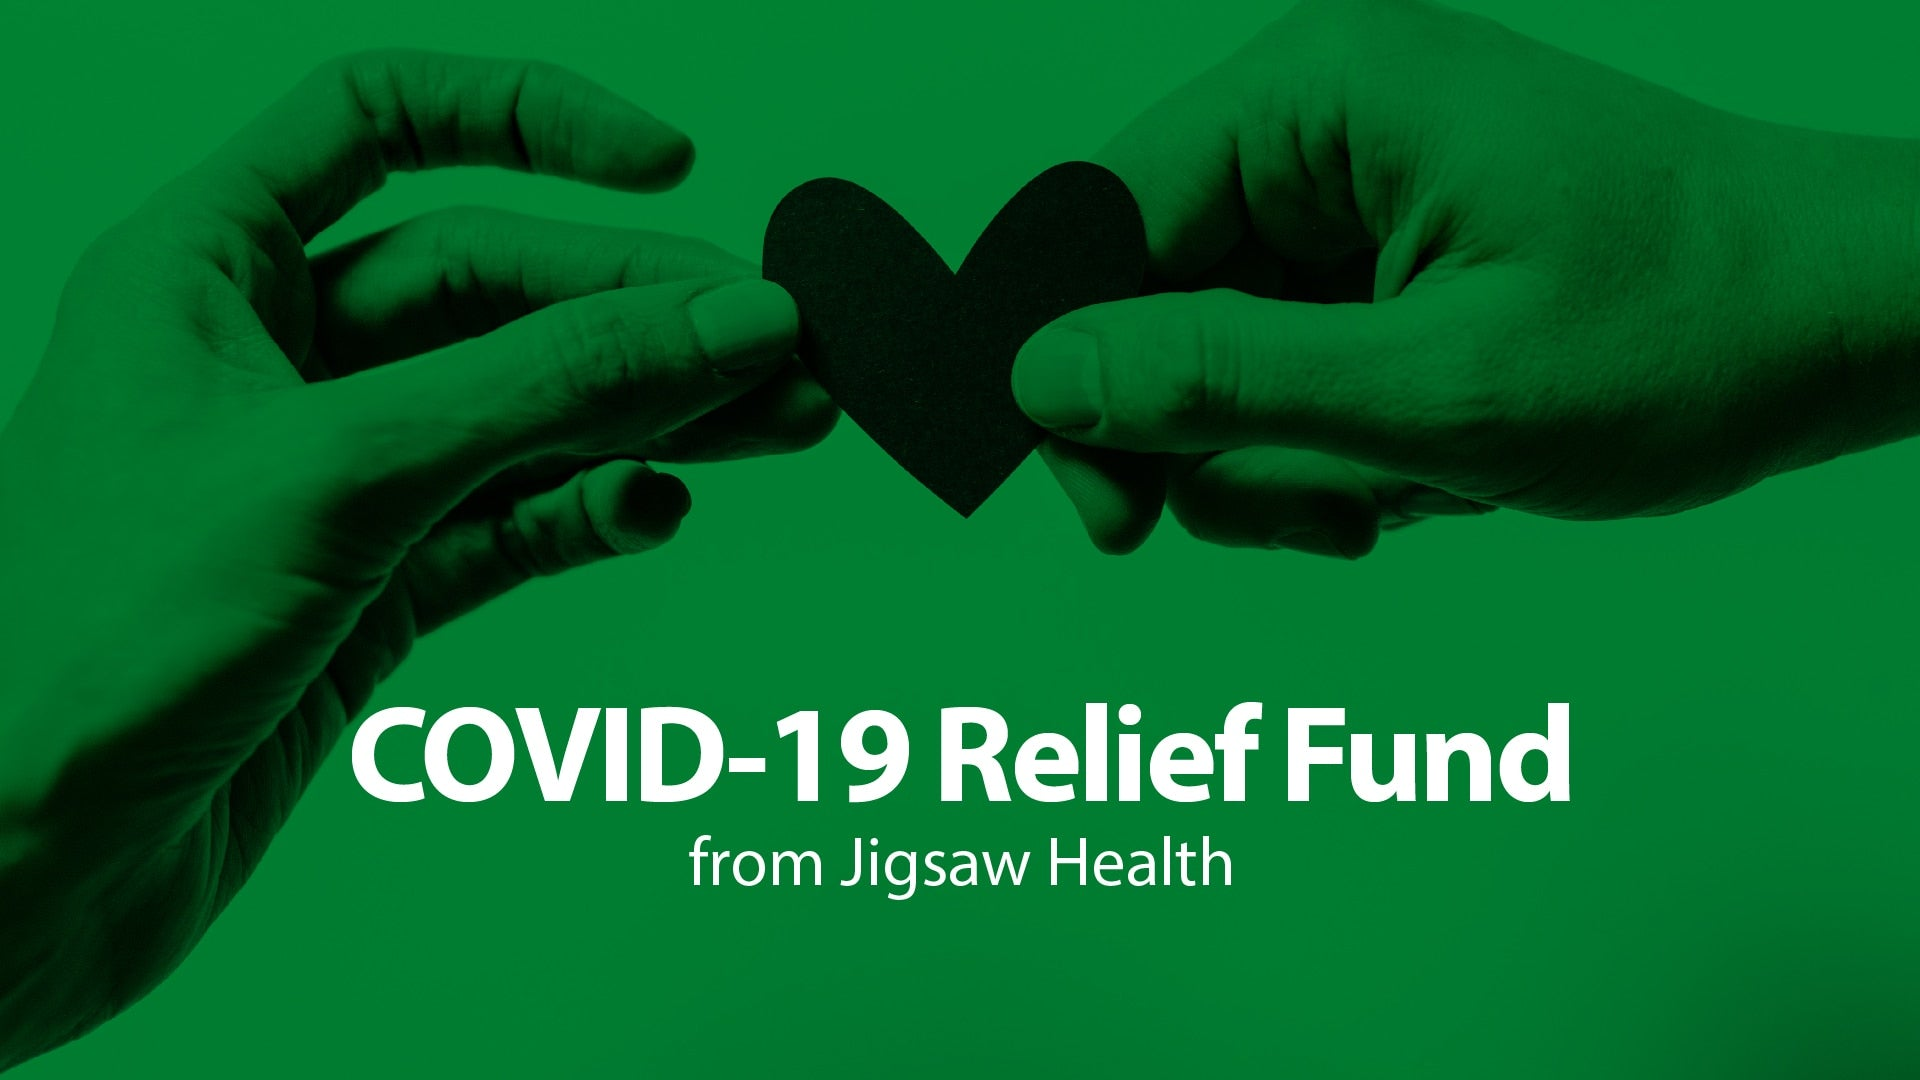 jigsaw-health-covid-19-relief-fund-product-page.jpg